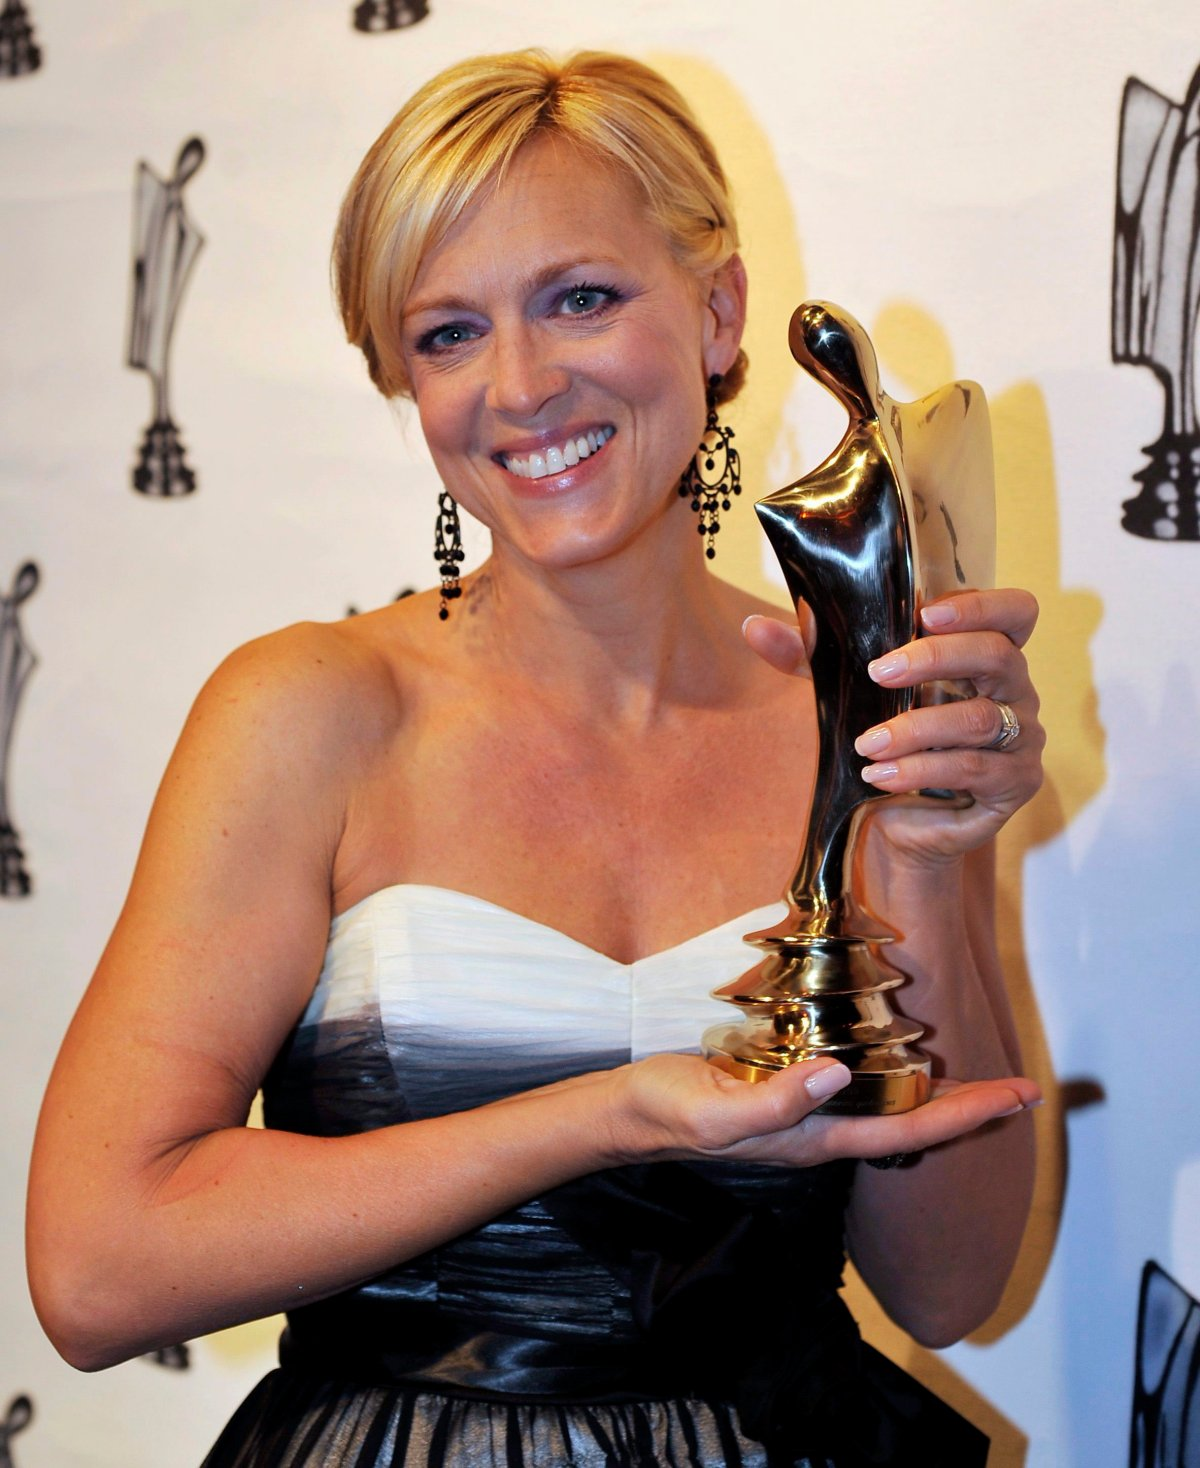 Actress Sophie Pregent holds up her trophy for best actress in a Quebec television series at the Gala Artis awards ceremony in Montreal on April 26, 2009.